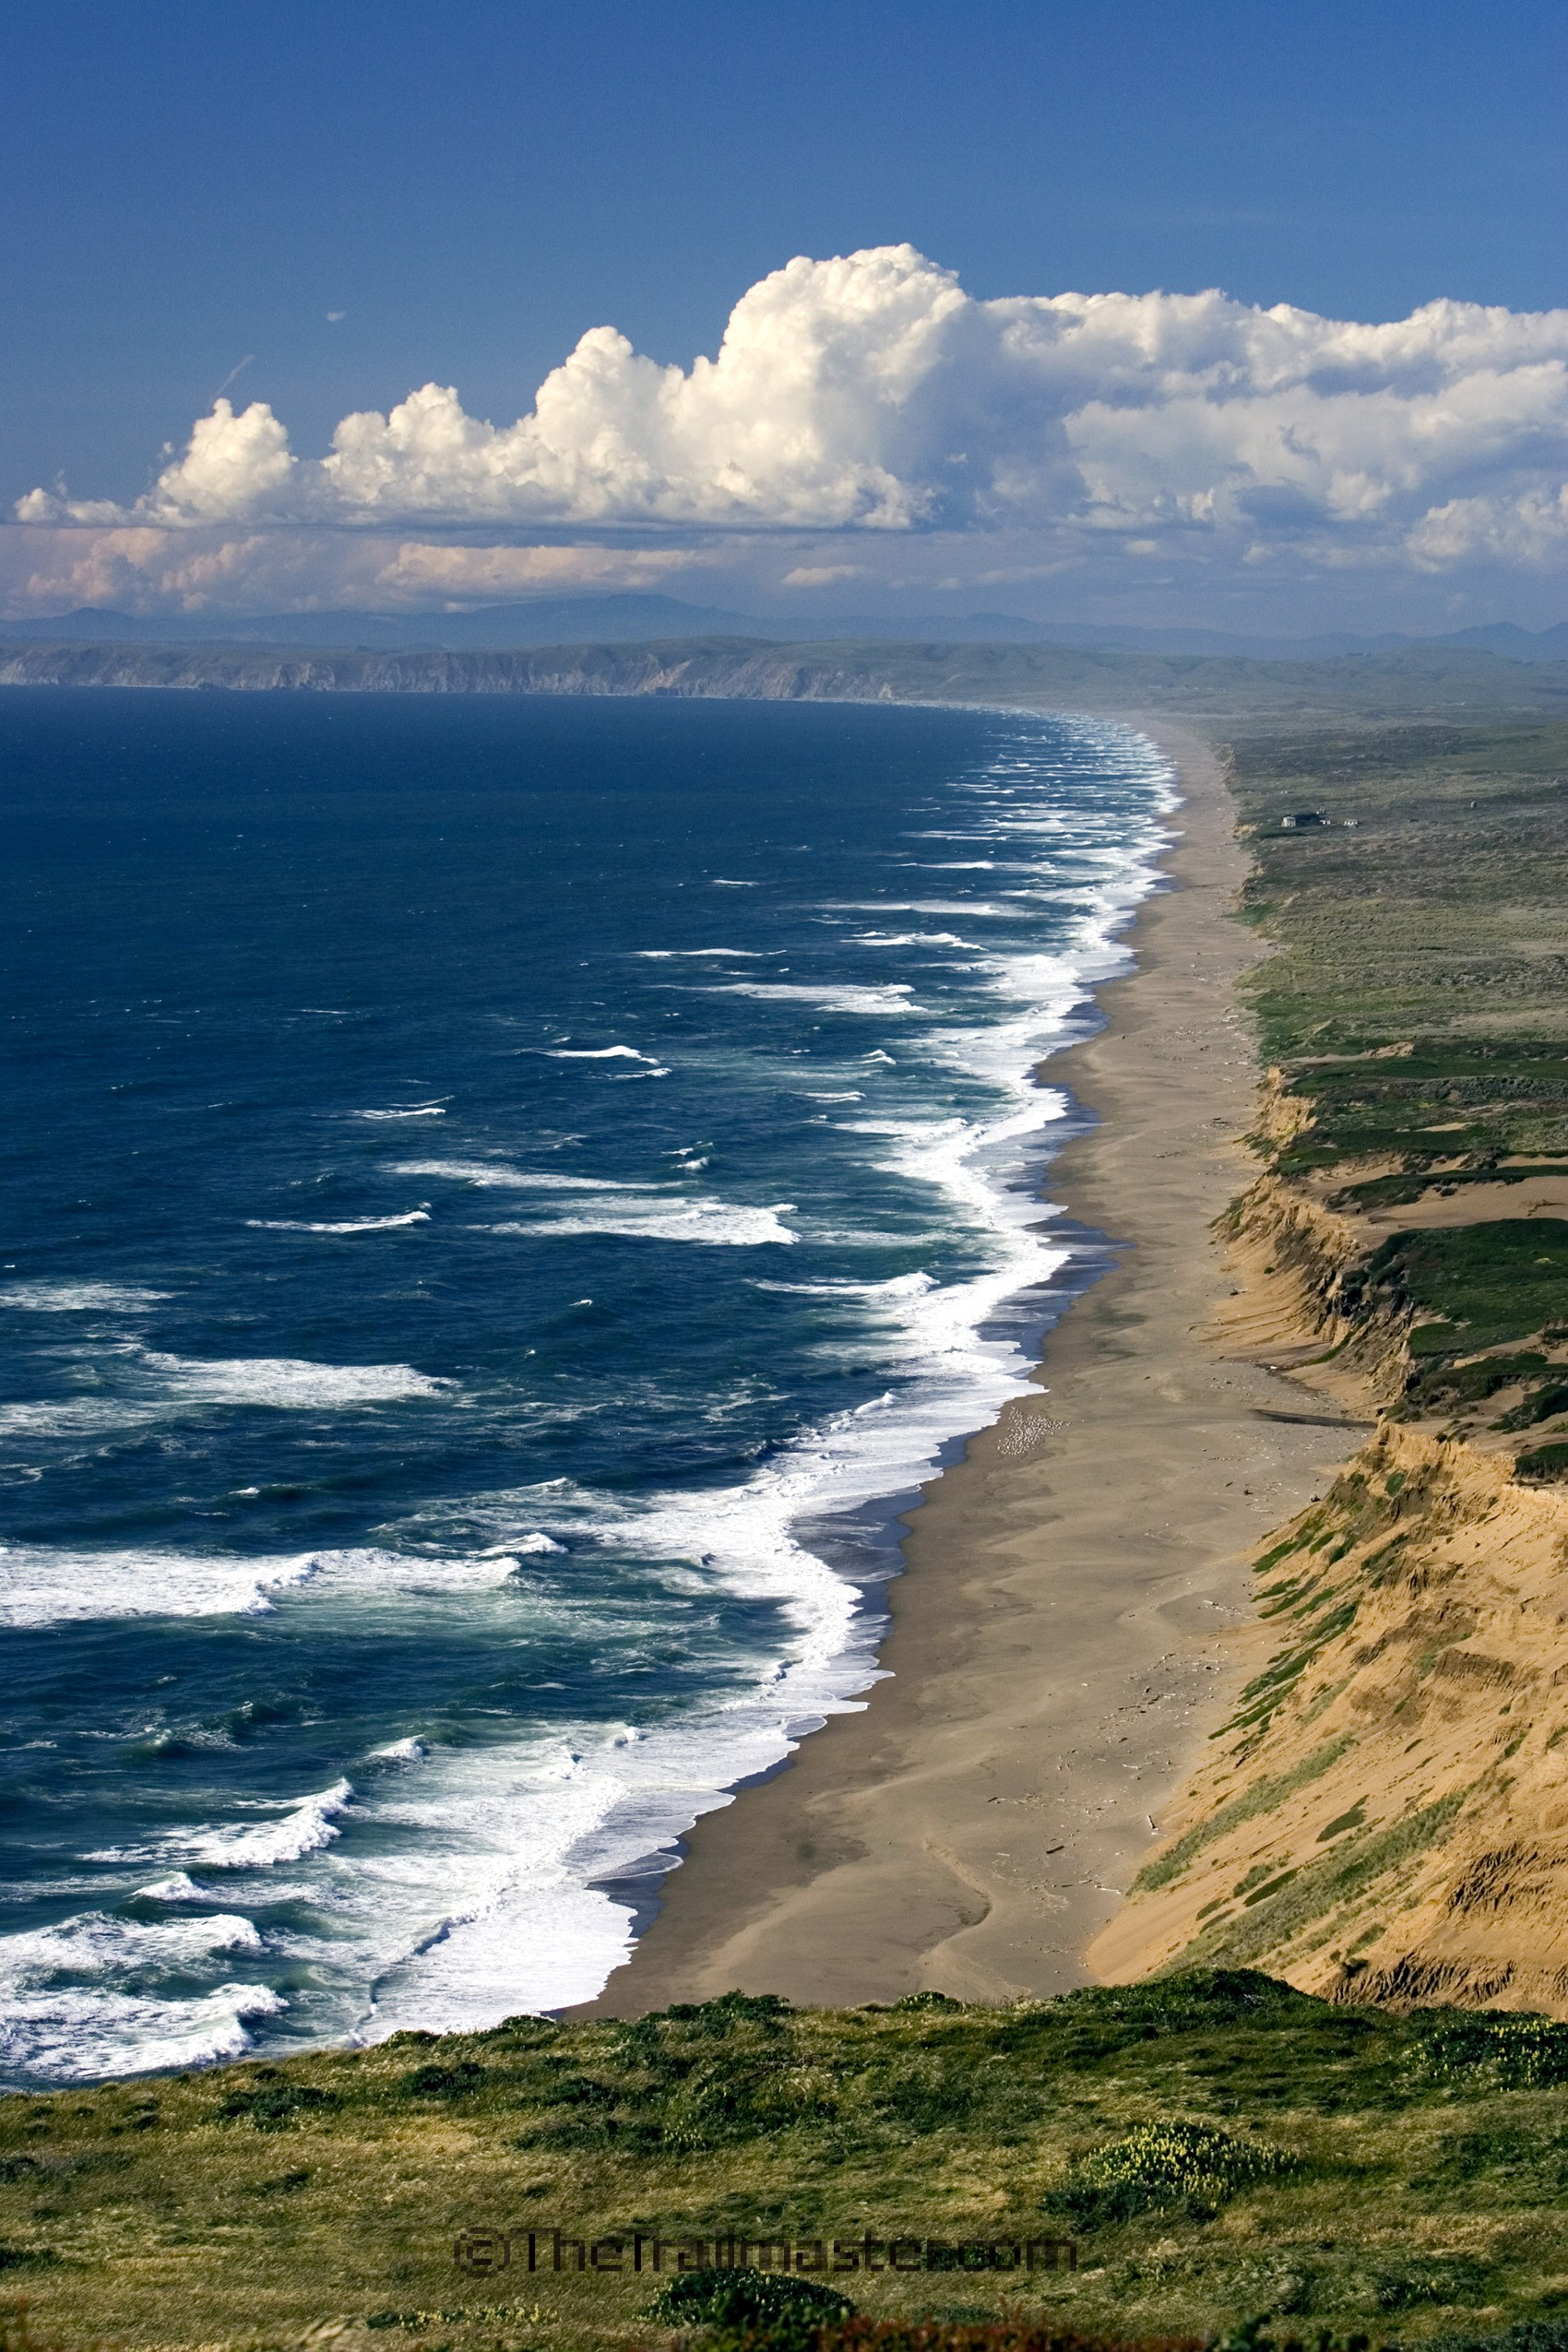 Point Reyes, a haven for birds, heaven for hikers.